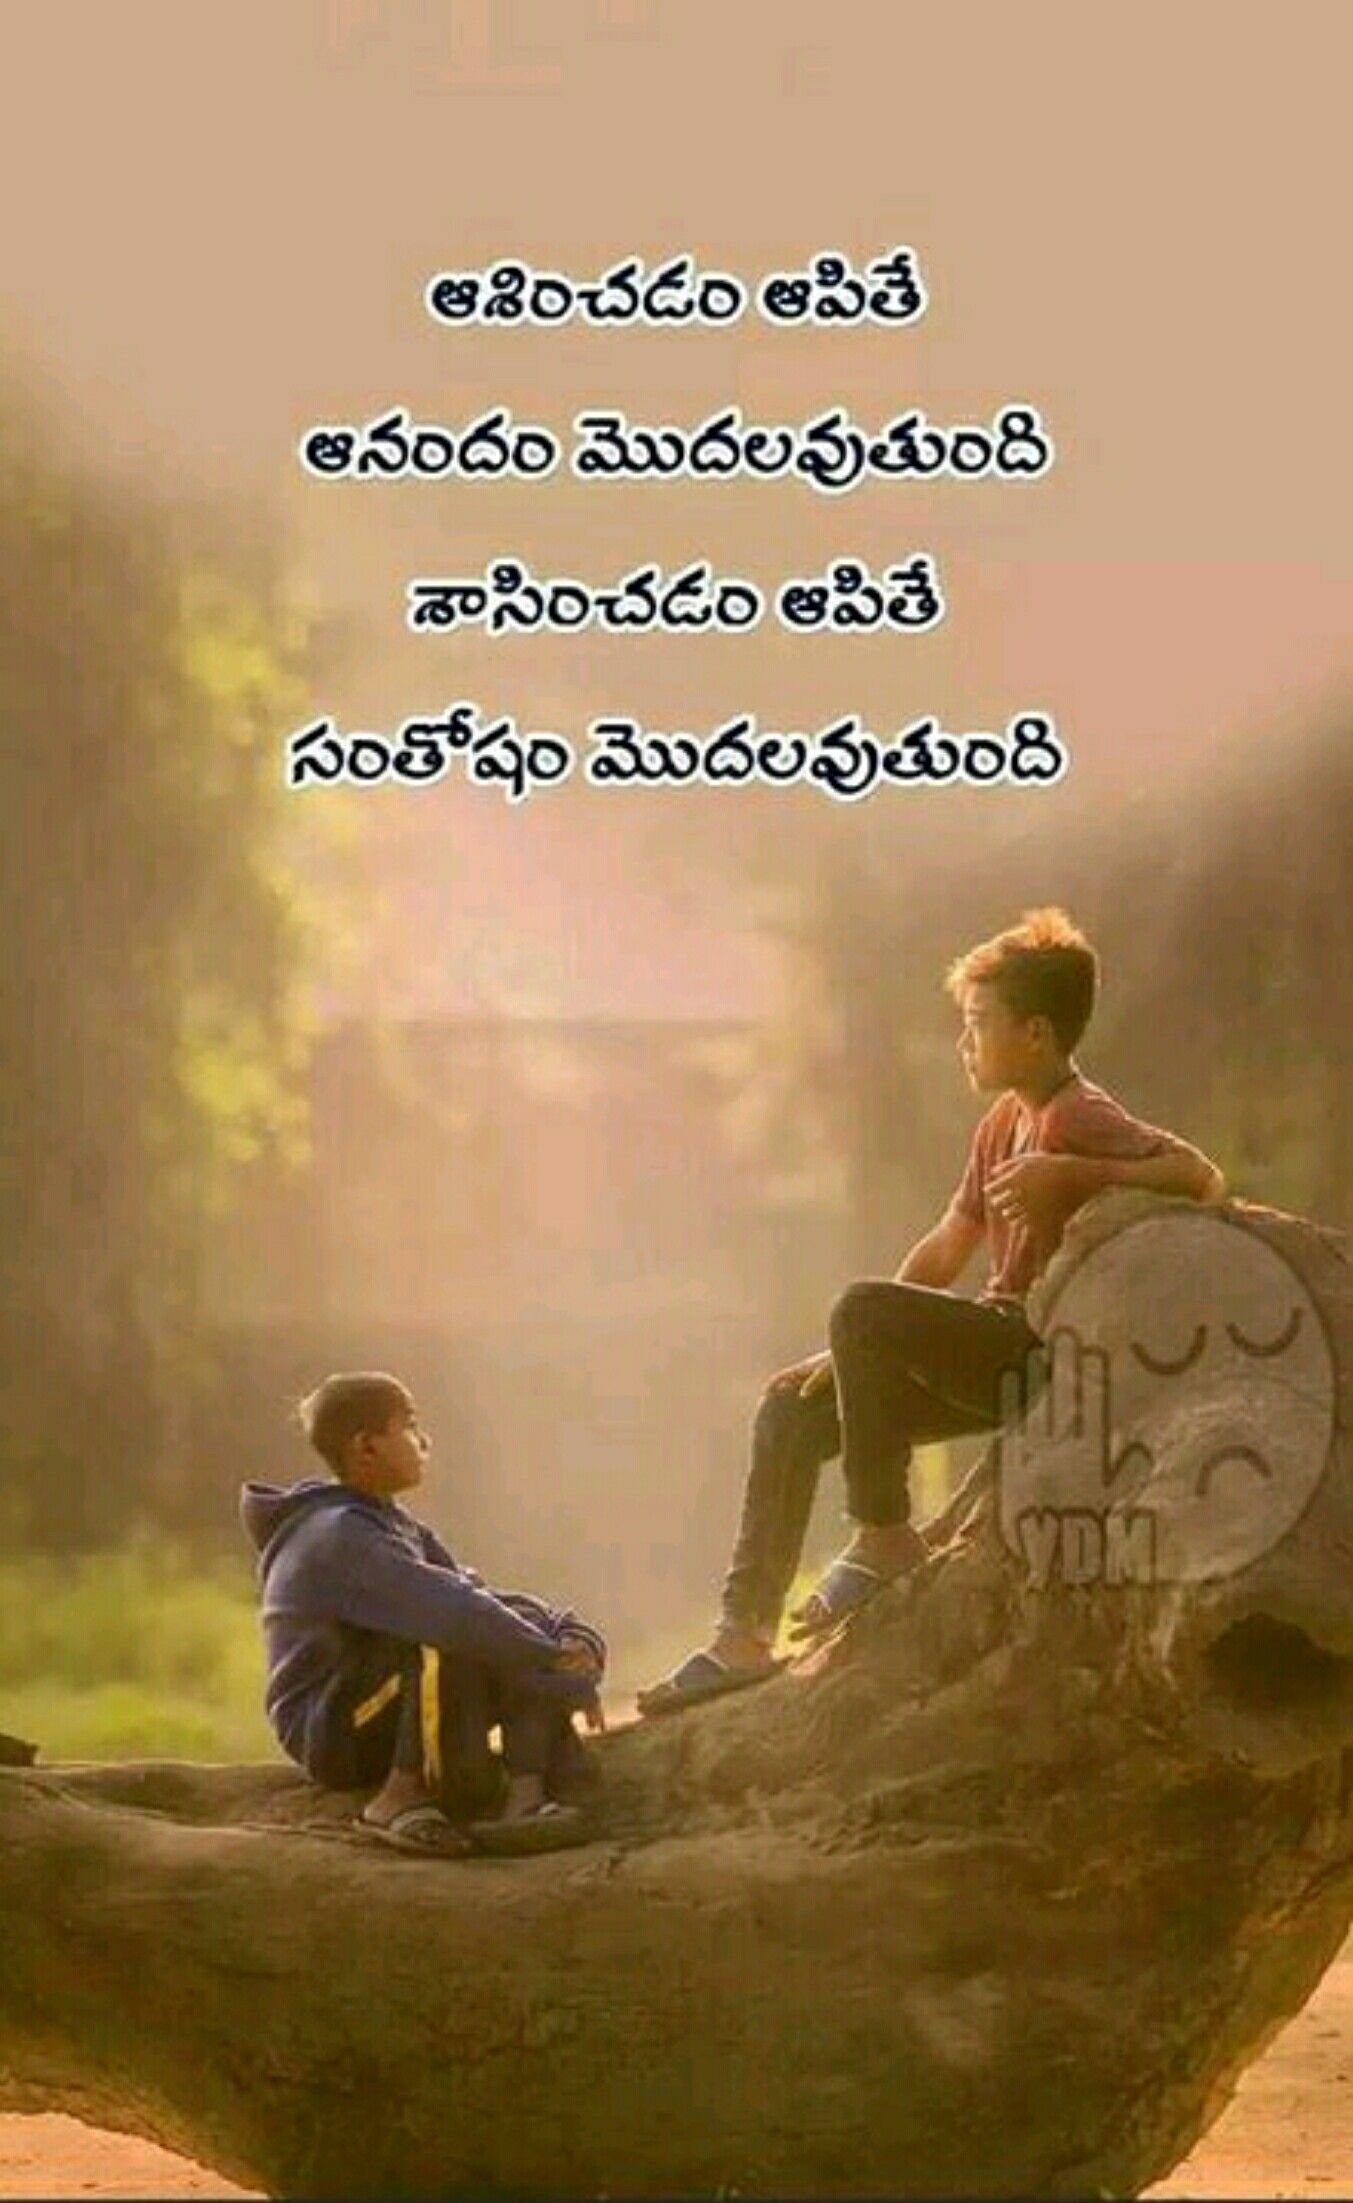 Pin By Adireddy Anilkumar Reddy On Savings Telugu Inspirational Quotes Life Quotes Pictures Life Lesson Quotes